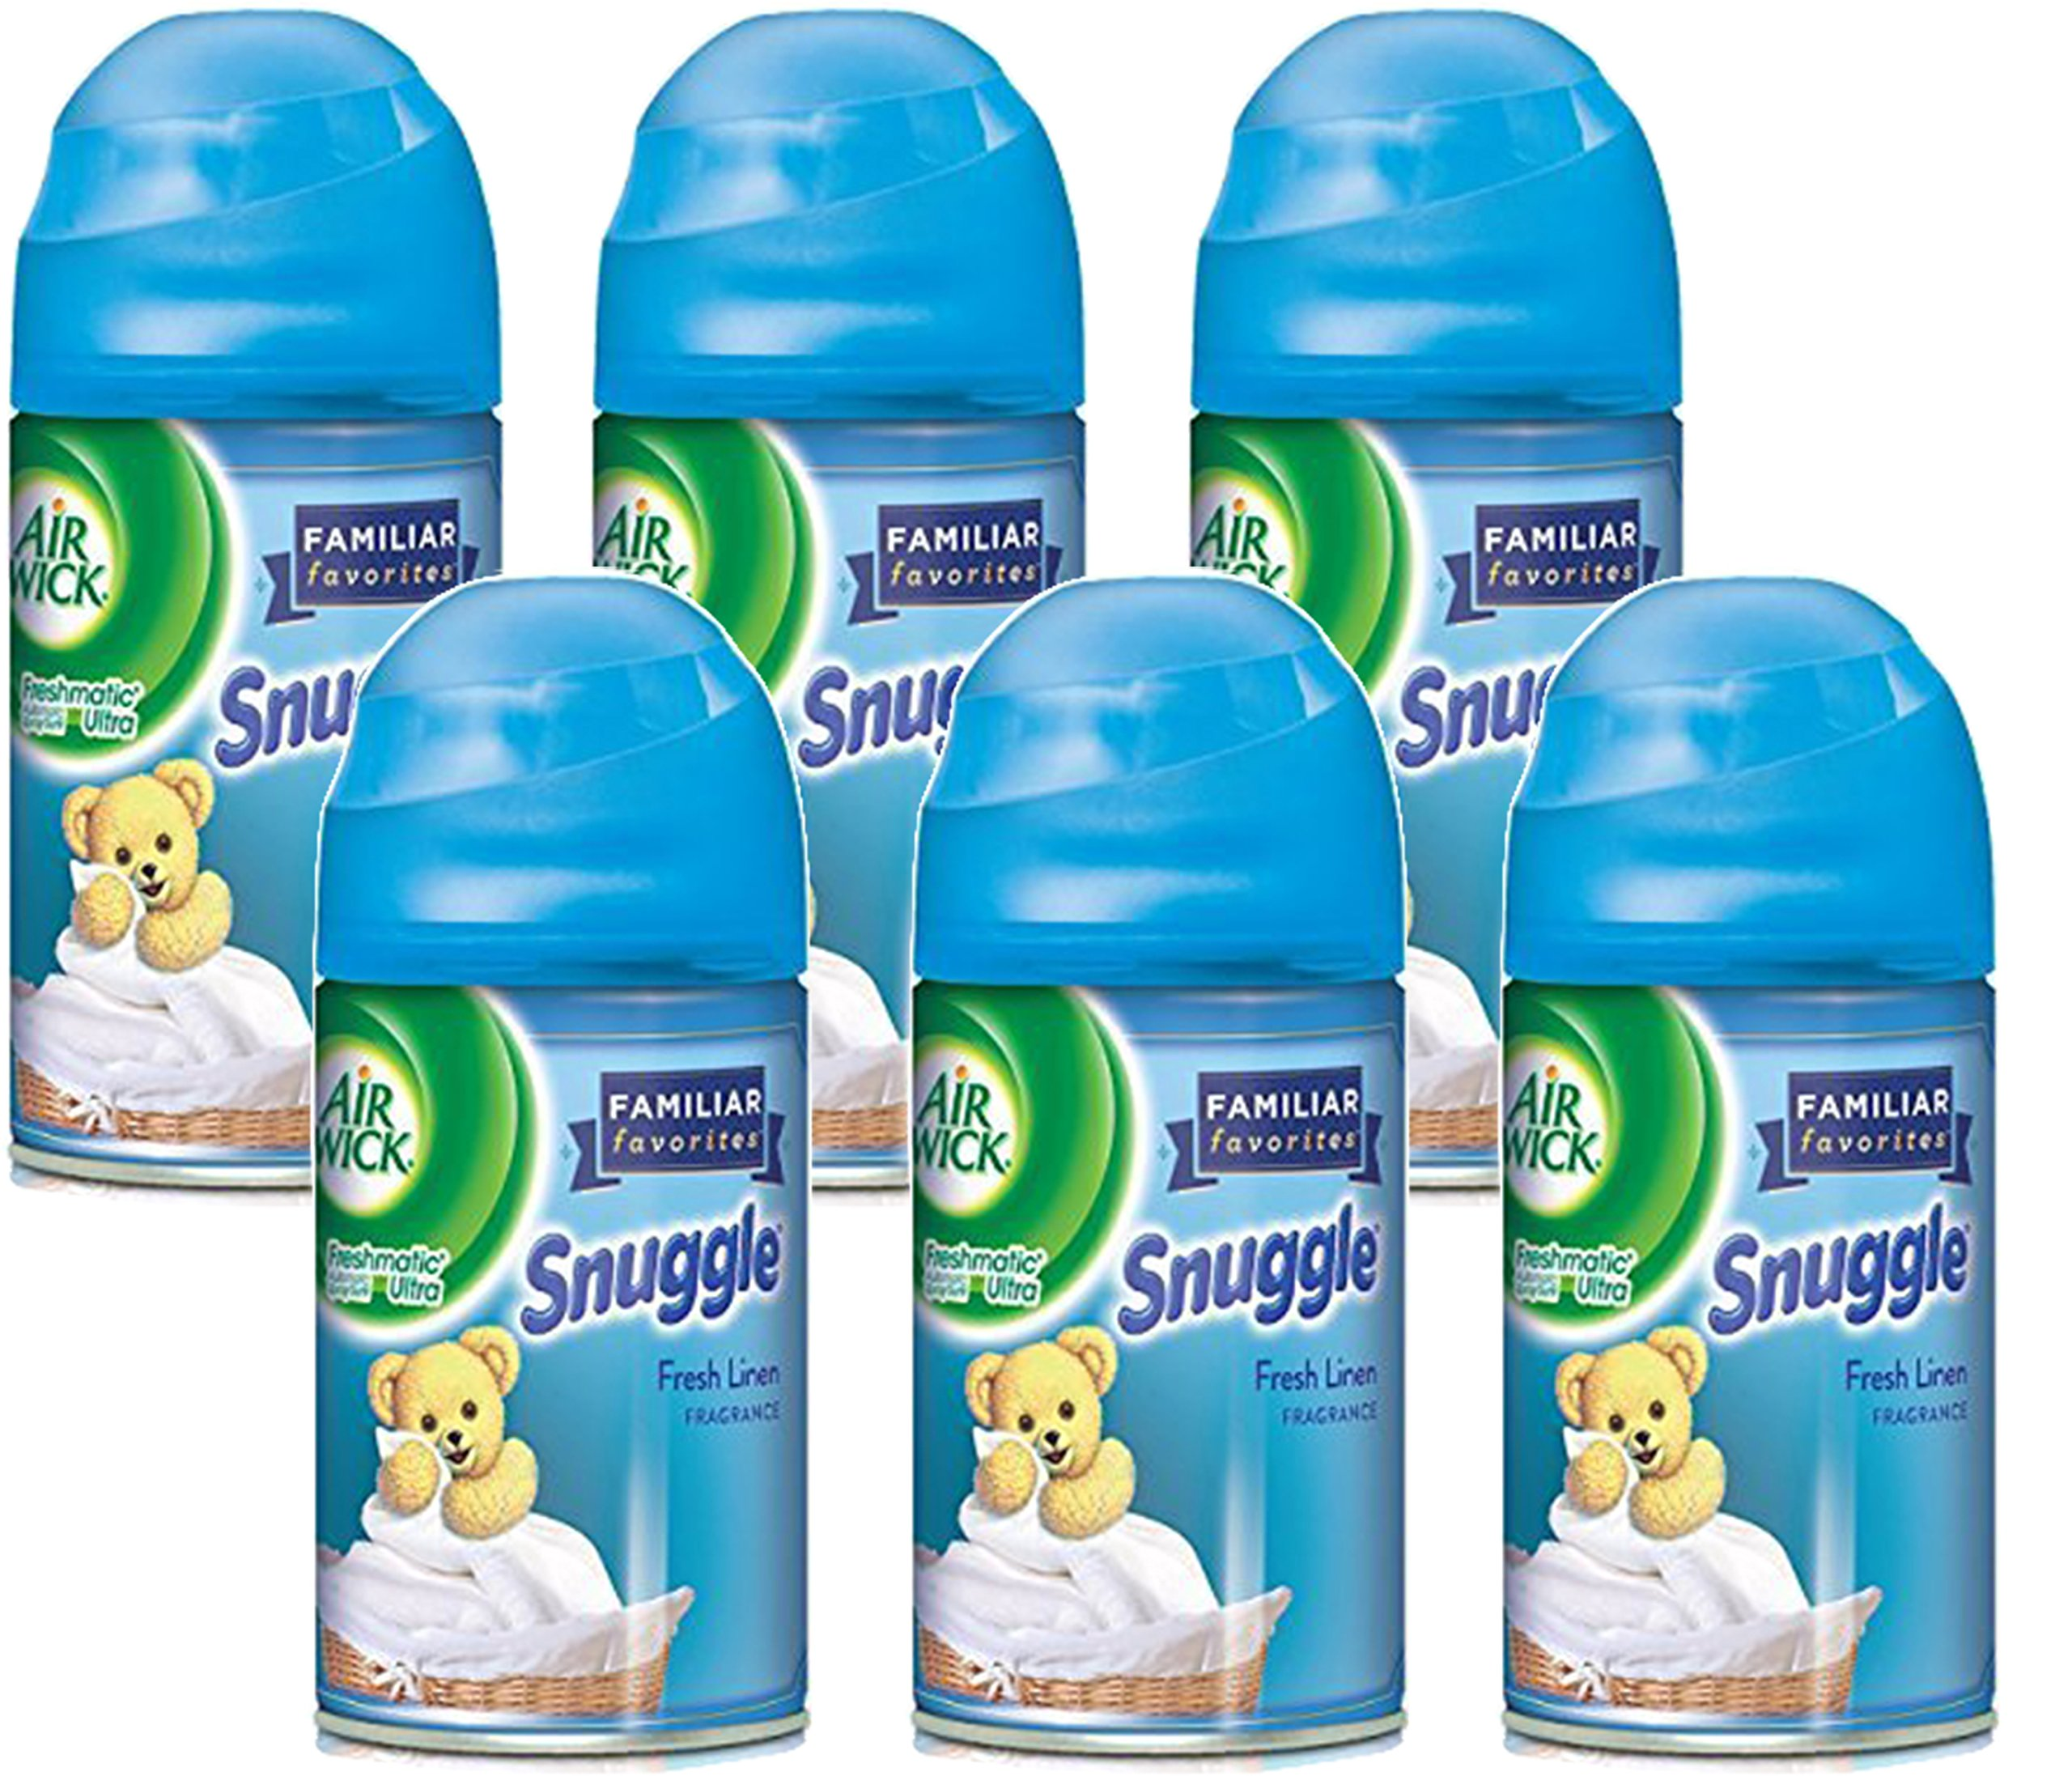 Airwick Freshmatic Refill, Snuggle Fresh Linen, 6.17 Ounce (Pack of 6) by Air Wick (Image #1)